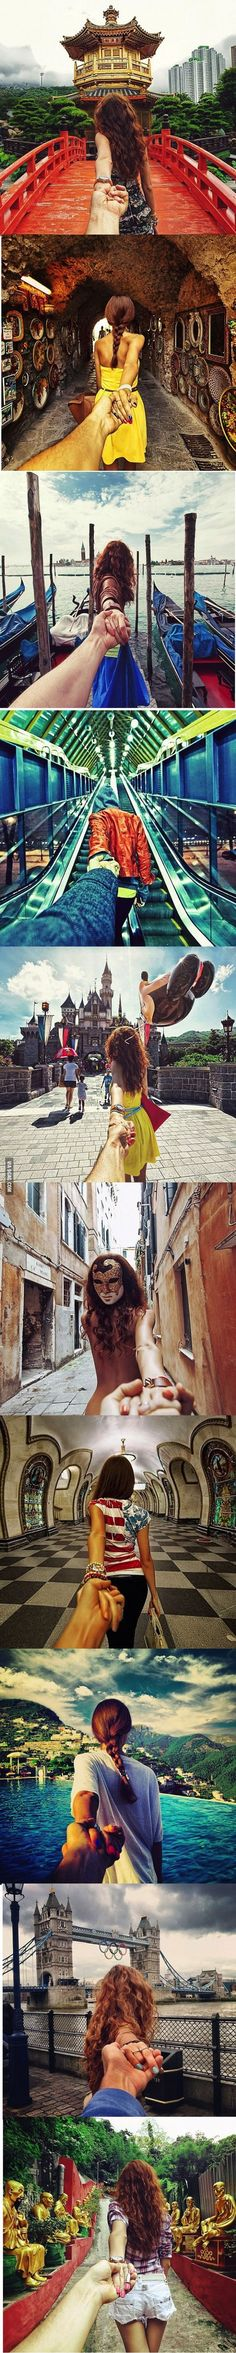 photographer's girlfriend leads him around the world